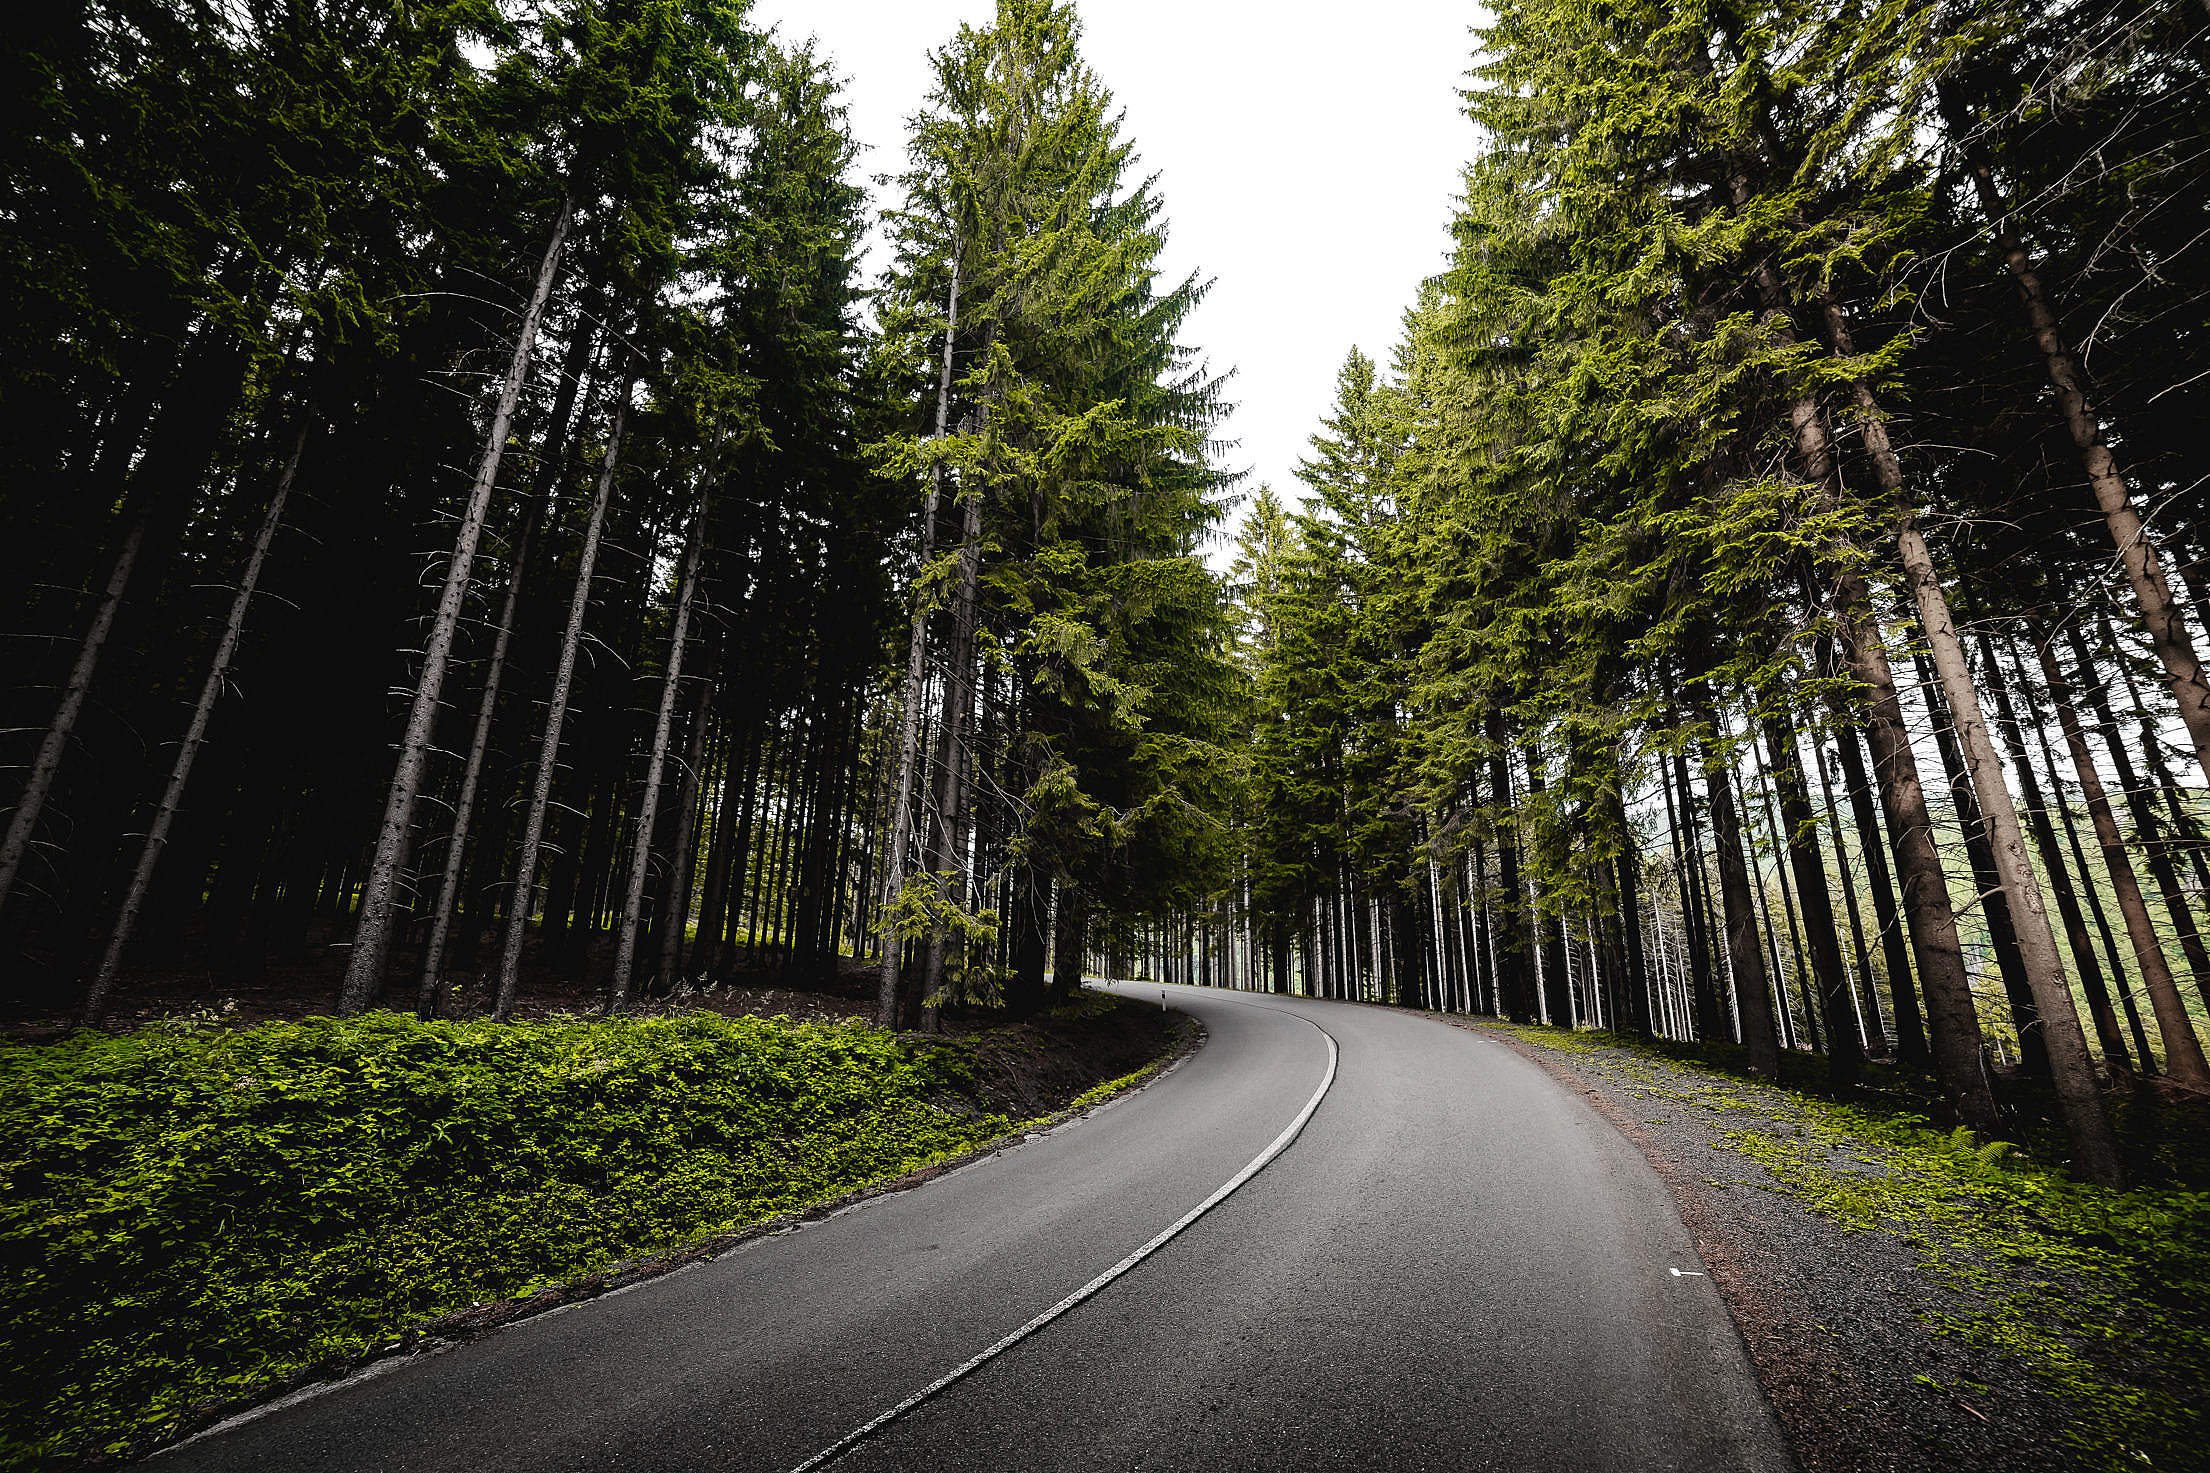 Long Road in Forest Free Stock Photo